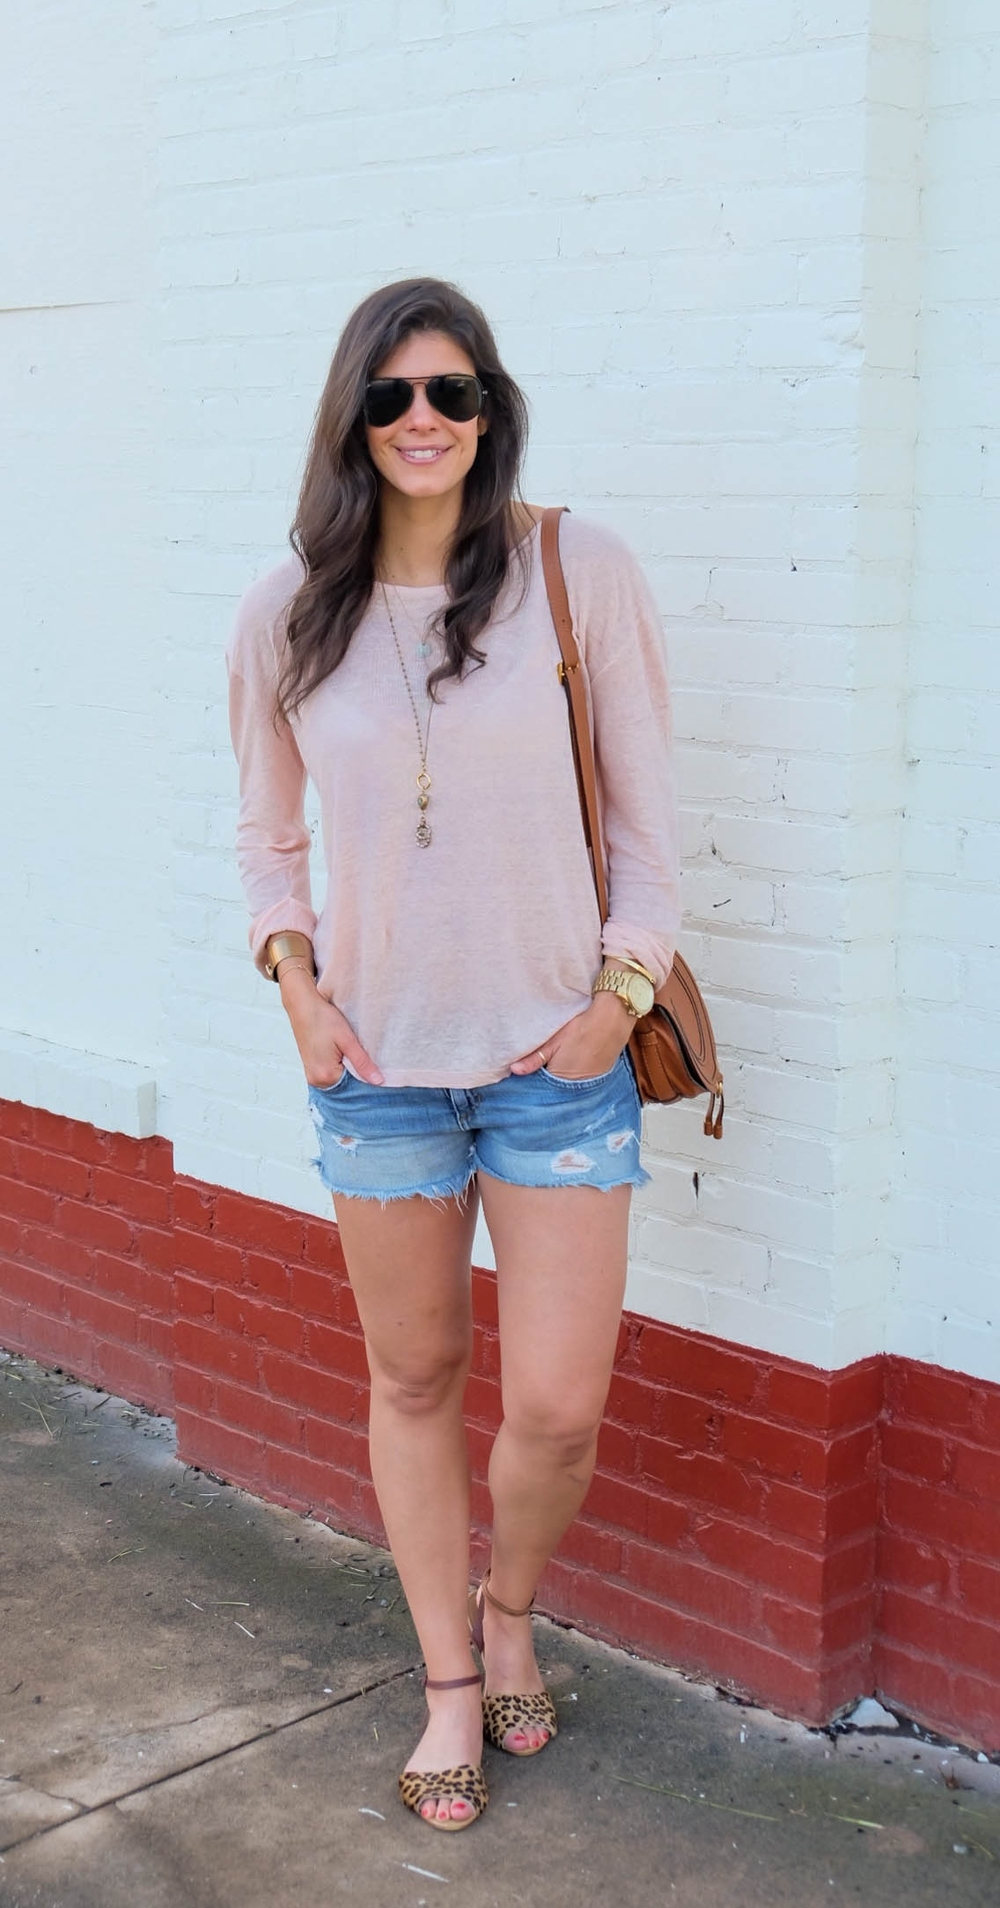 LaurenSchwaiger-Style-Blog-Denim-Cutoffs-Summer-Sweater-OOTD.jpg